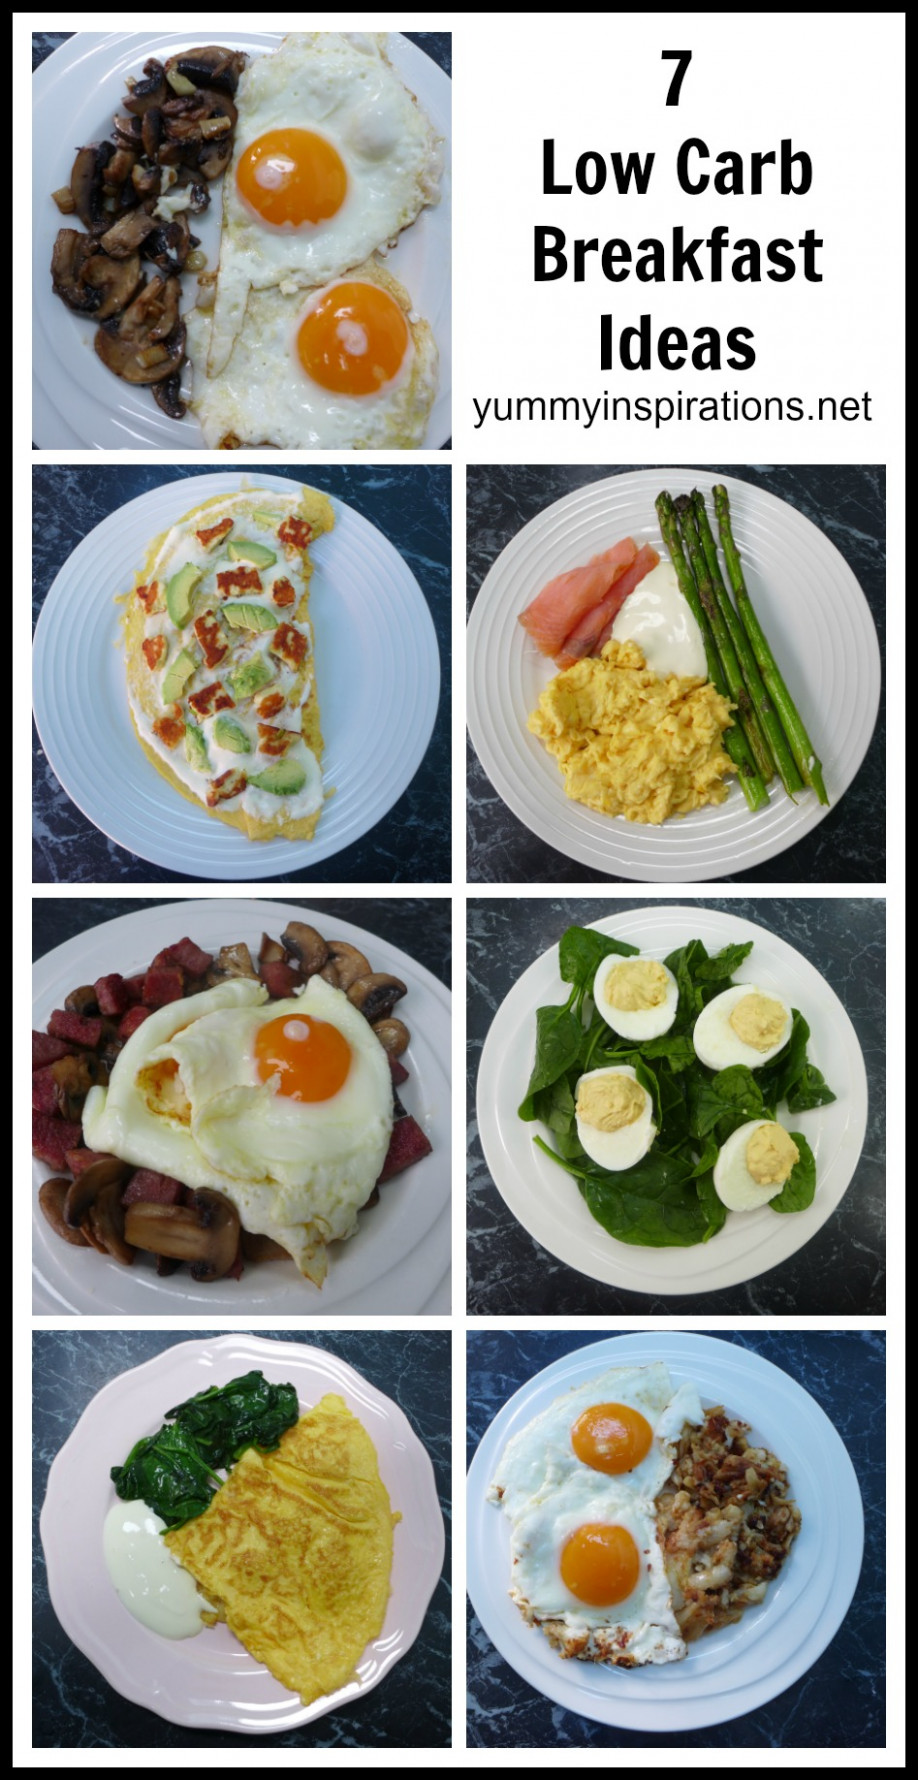 7 Low Carb Breakfast Ideas - A week of Keto Breakfast Recipes